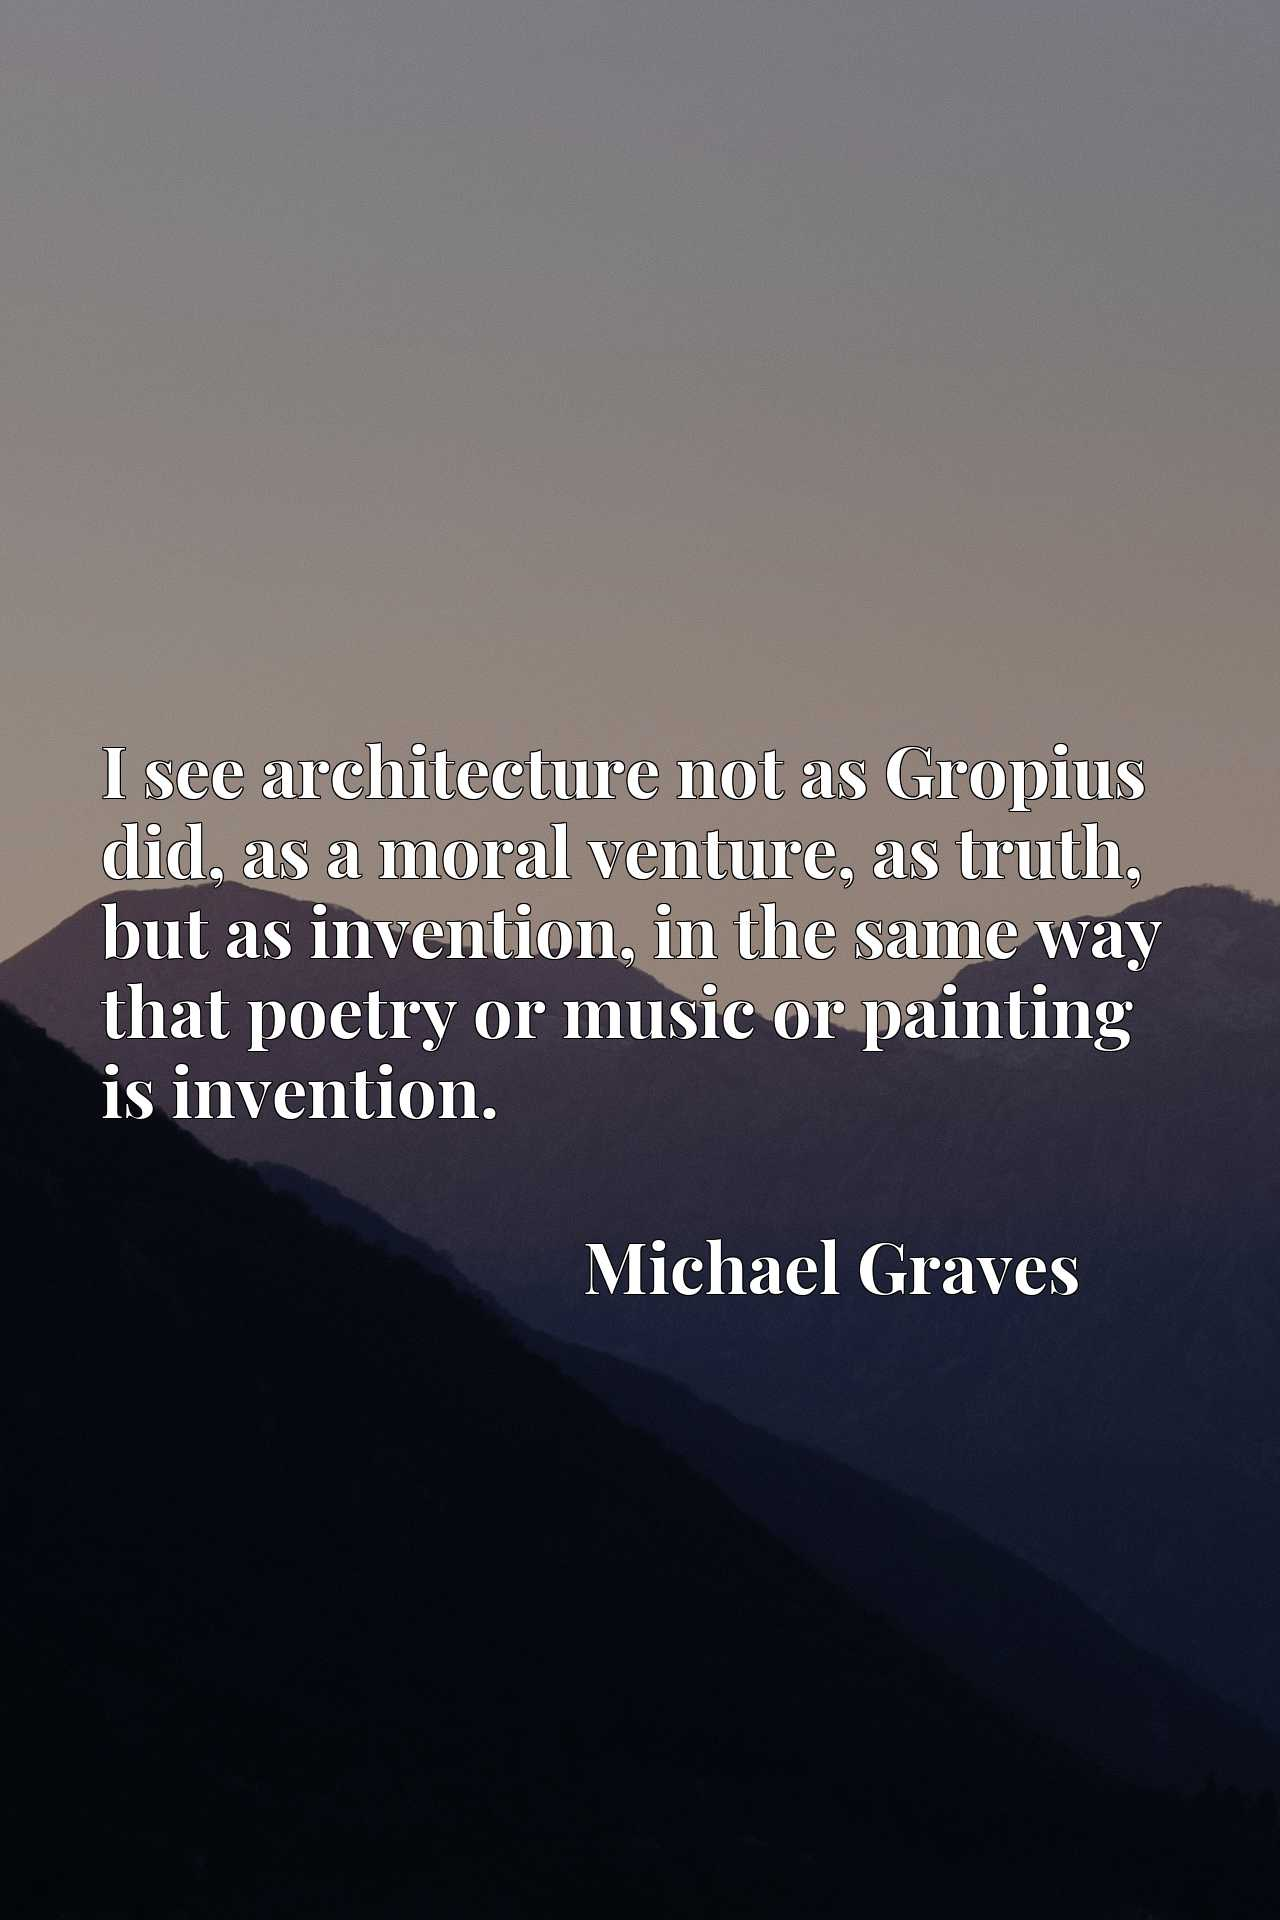 I see architecture not as Gropius did, as a moral venture, as truth, but as invention, in the same way that poetry or music or painting is invention.